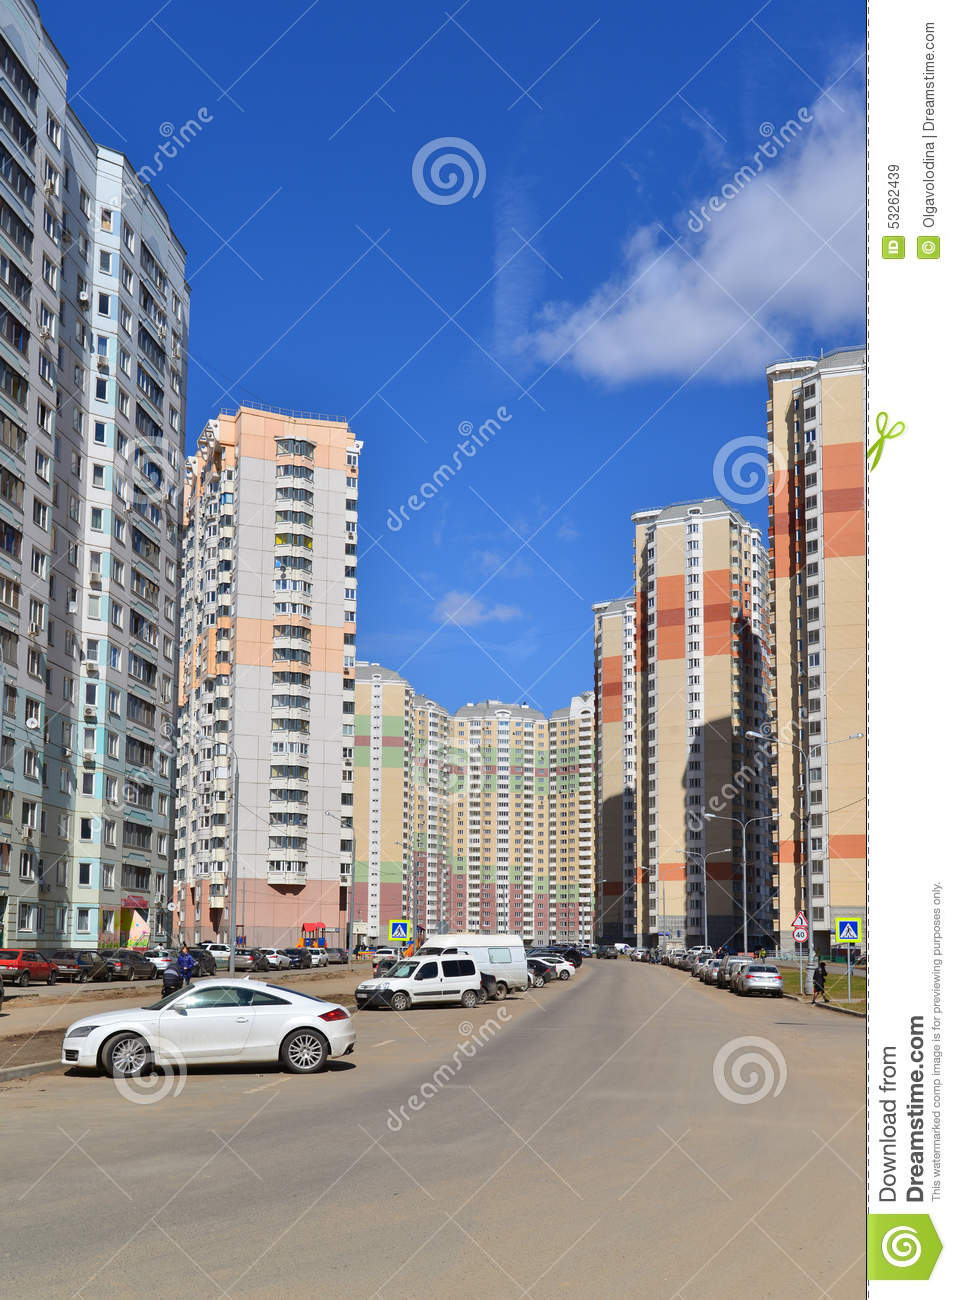 Krasnogorsk Russia  city images : KRASNOGORSK, RUSSIA APRIL 22,2015: Krasnogorsk is city and center of ...